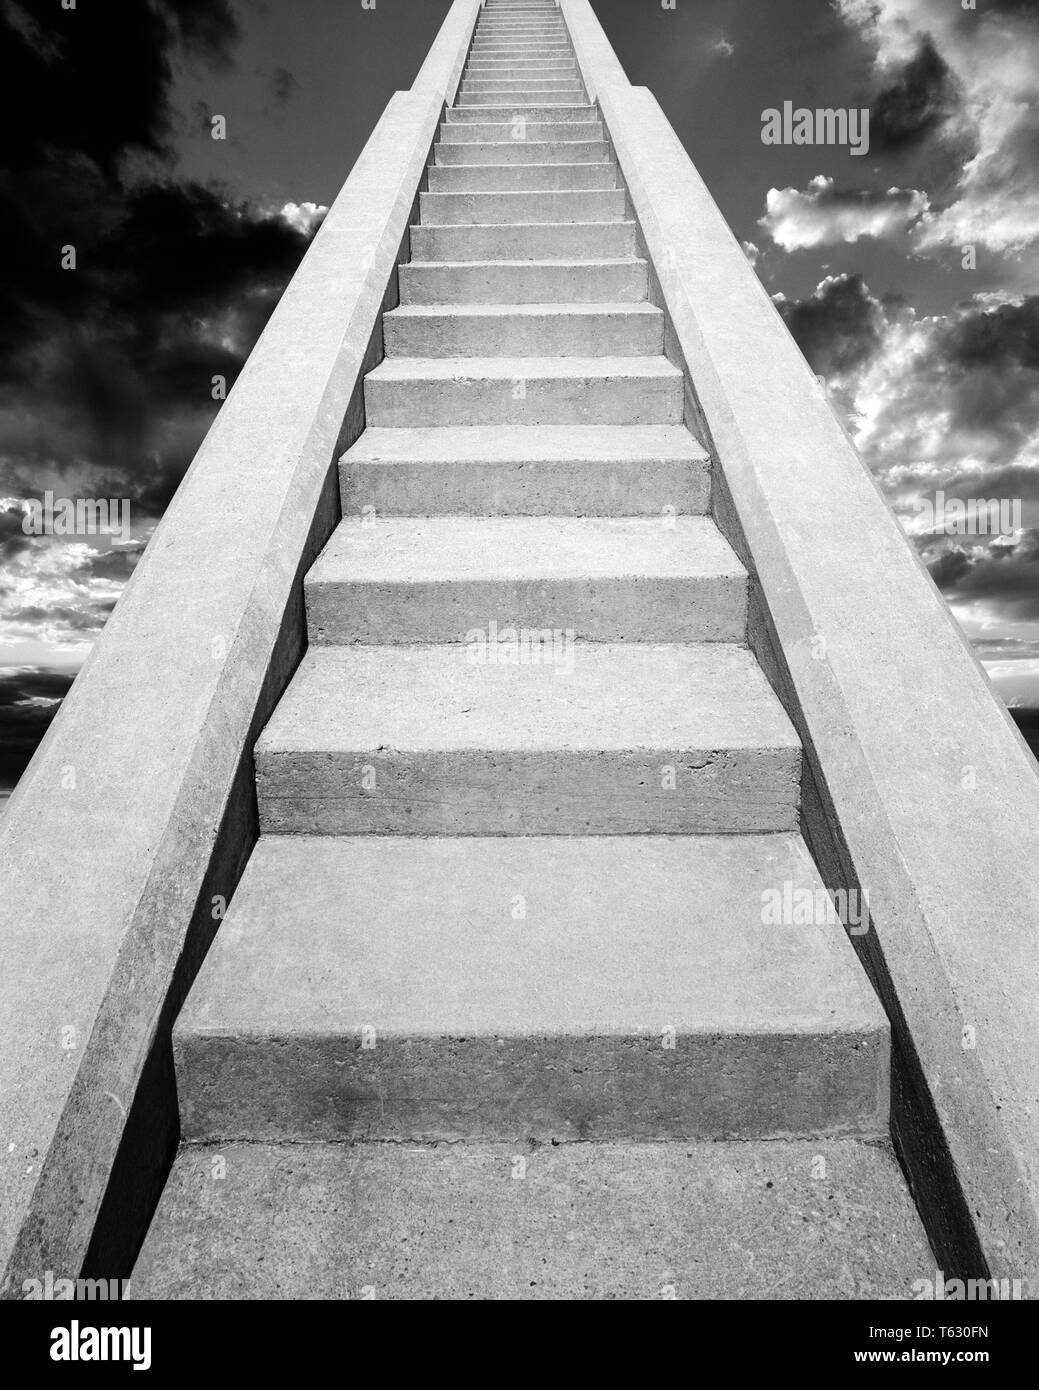 VIEW AT BOTTOM OF SET OF CONCRETE STAIRS  LOOKING UP TO THE TOP INTO THE SKY THE HEAVENS - s14723c HAR001 HARS CHOICE COMPOSITE EXTERIOR LOW ANGLE STAIR DIRECTION HEAVEN UP STAIRCASE STAIRWAY CONCEPT CONNECTION CONCEPTUAL STILL LIFE PARADISE STEEP STYLISH FAITHFUL SYMBOLIC CONCEPTS FAITH IDEAS LOOKING  UP REWARD BELIEF BLACK AND WHITE CONCRETE HAR001 OLD FASHIONED REPRESENTATION - Stock Image